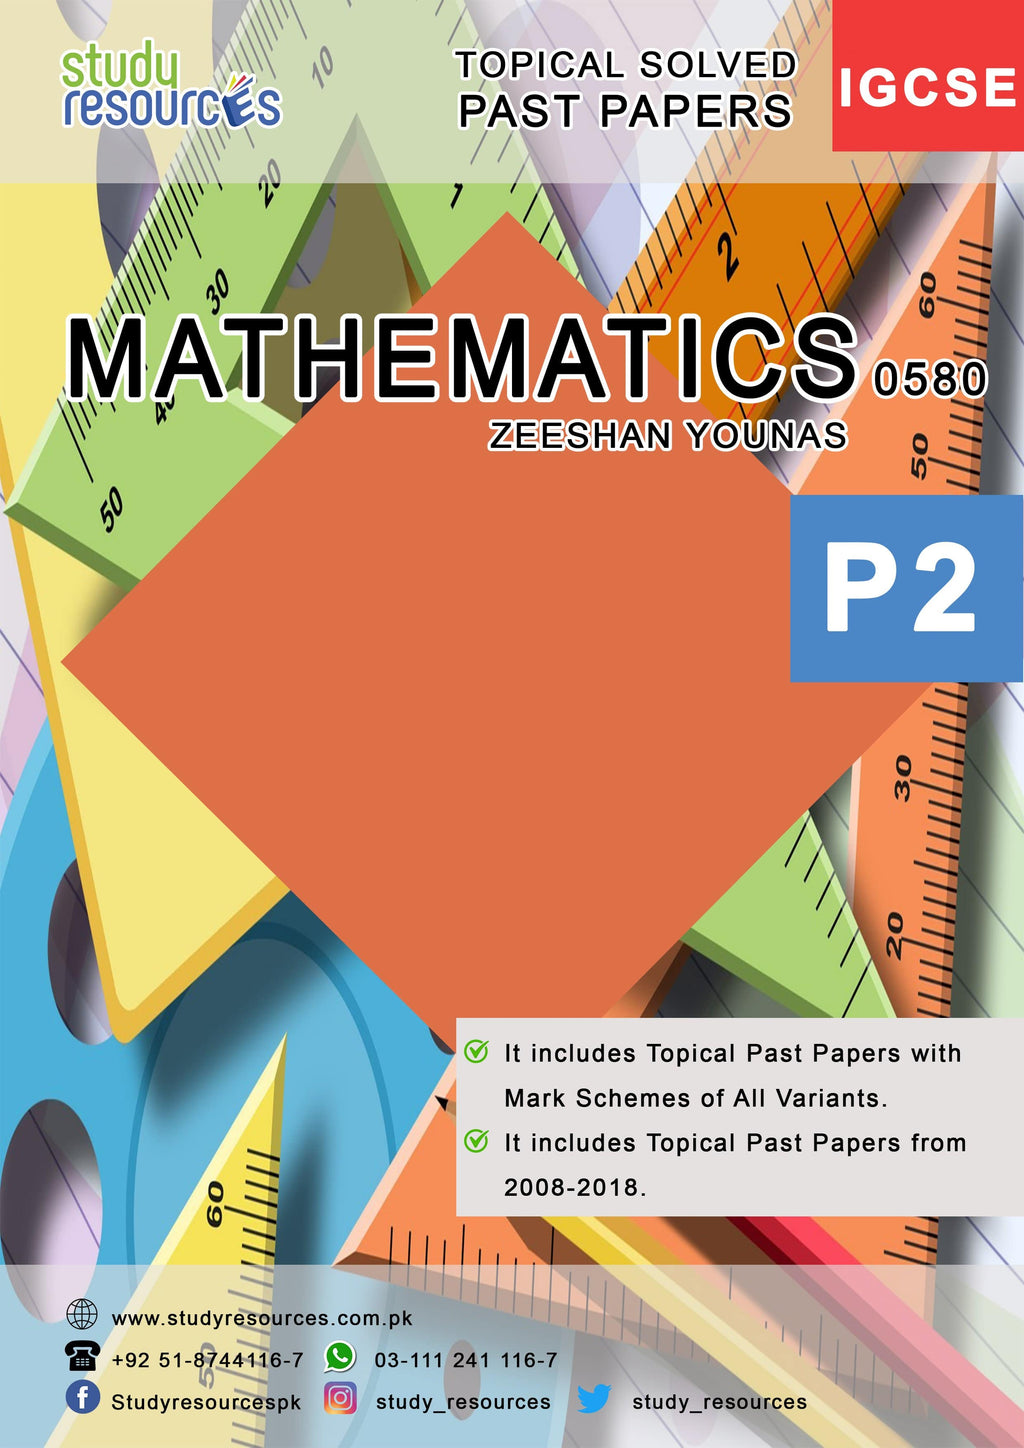 Cambridge IGCSE Mathematics (0580) P-2 Topical Past Papers (2008-2018) by Zeeshan Younas